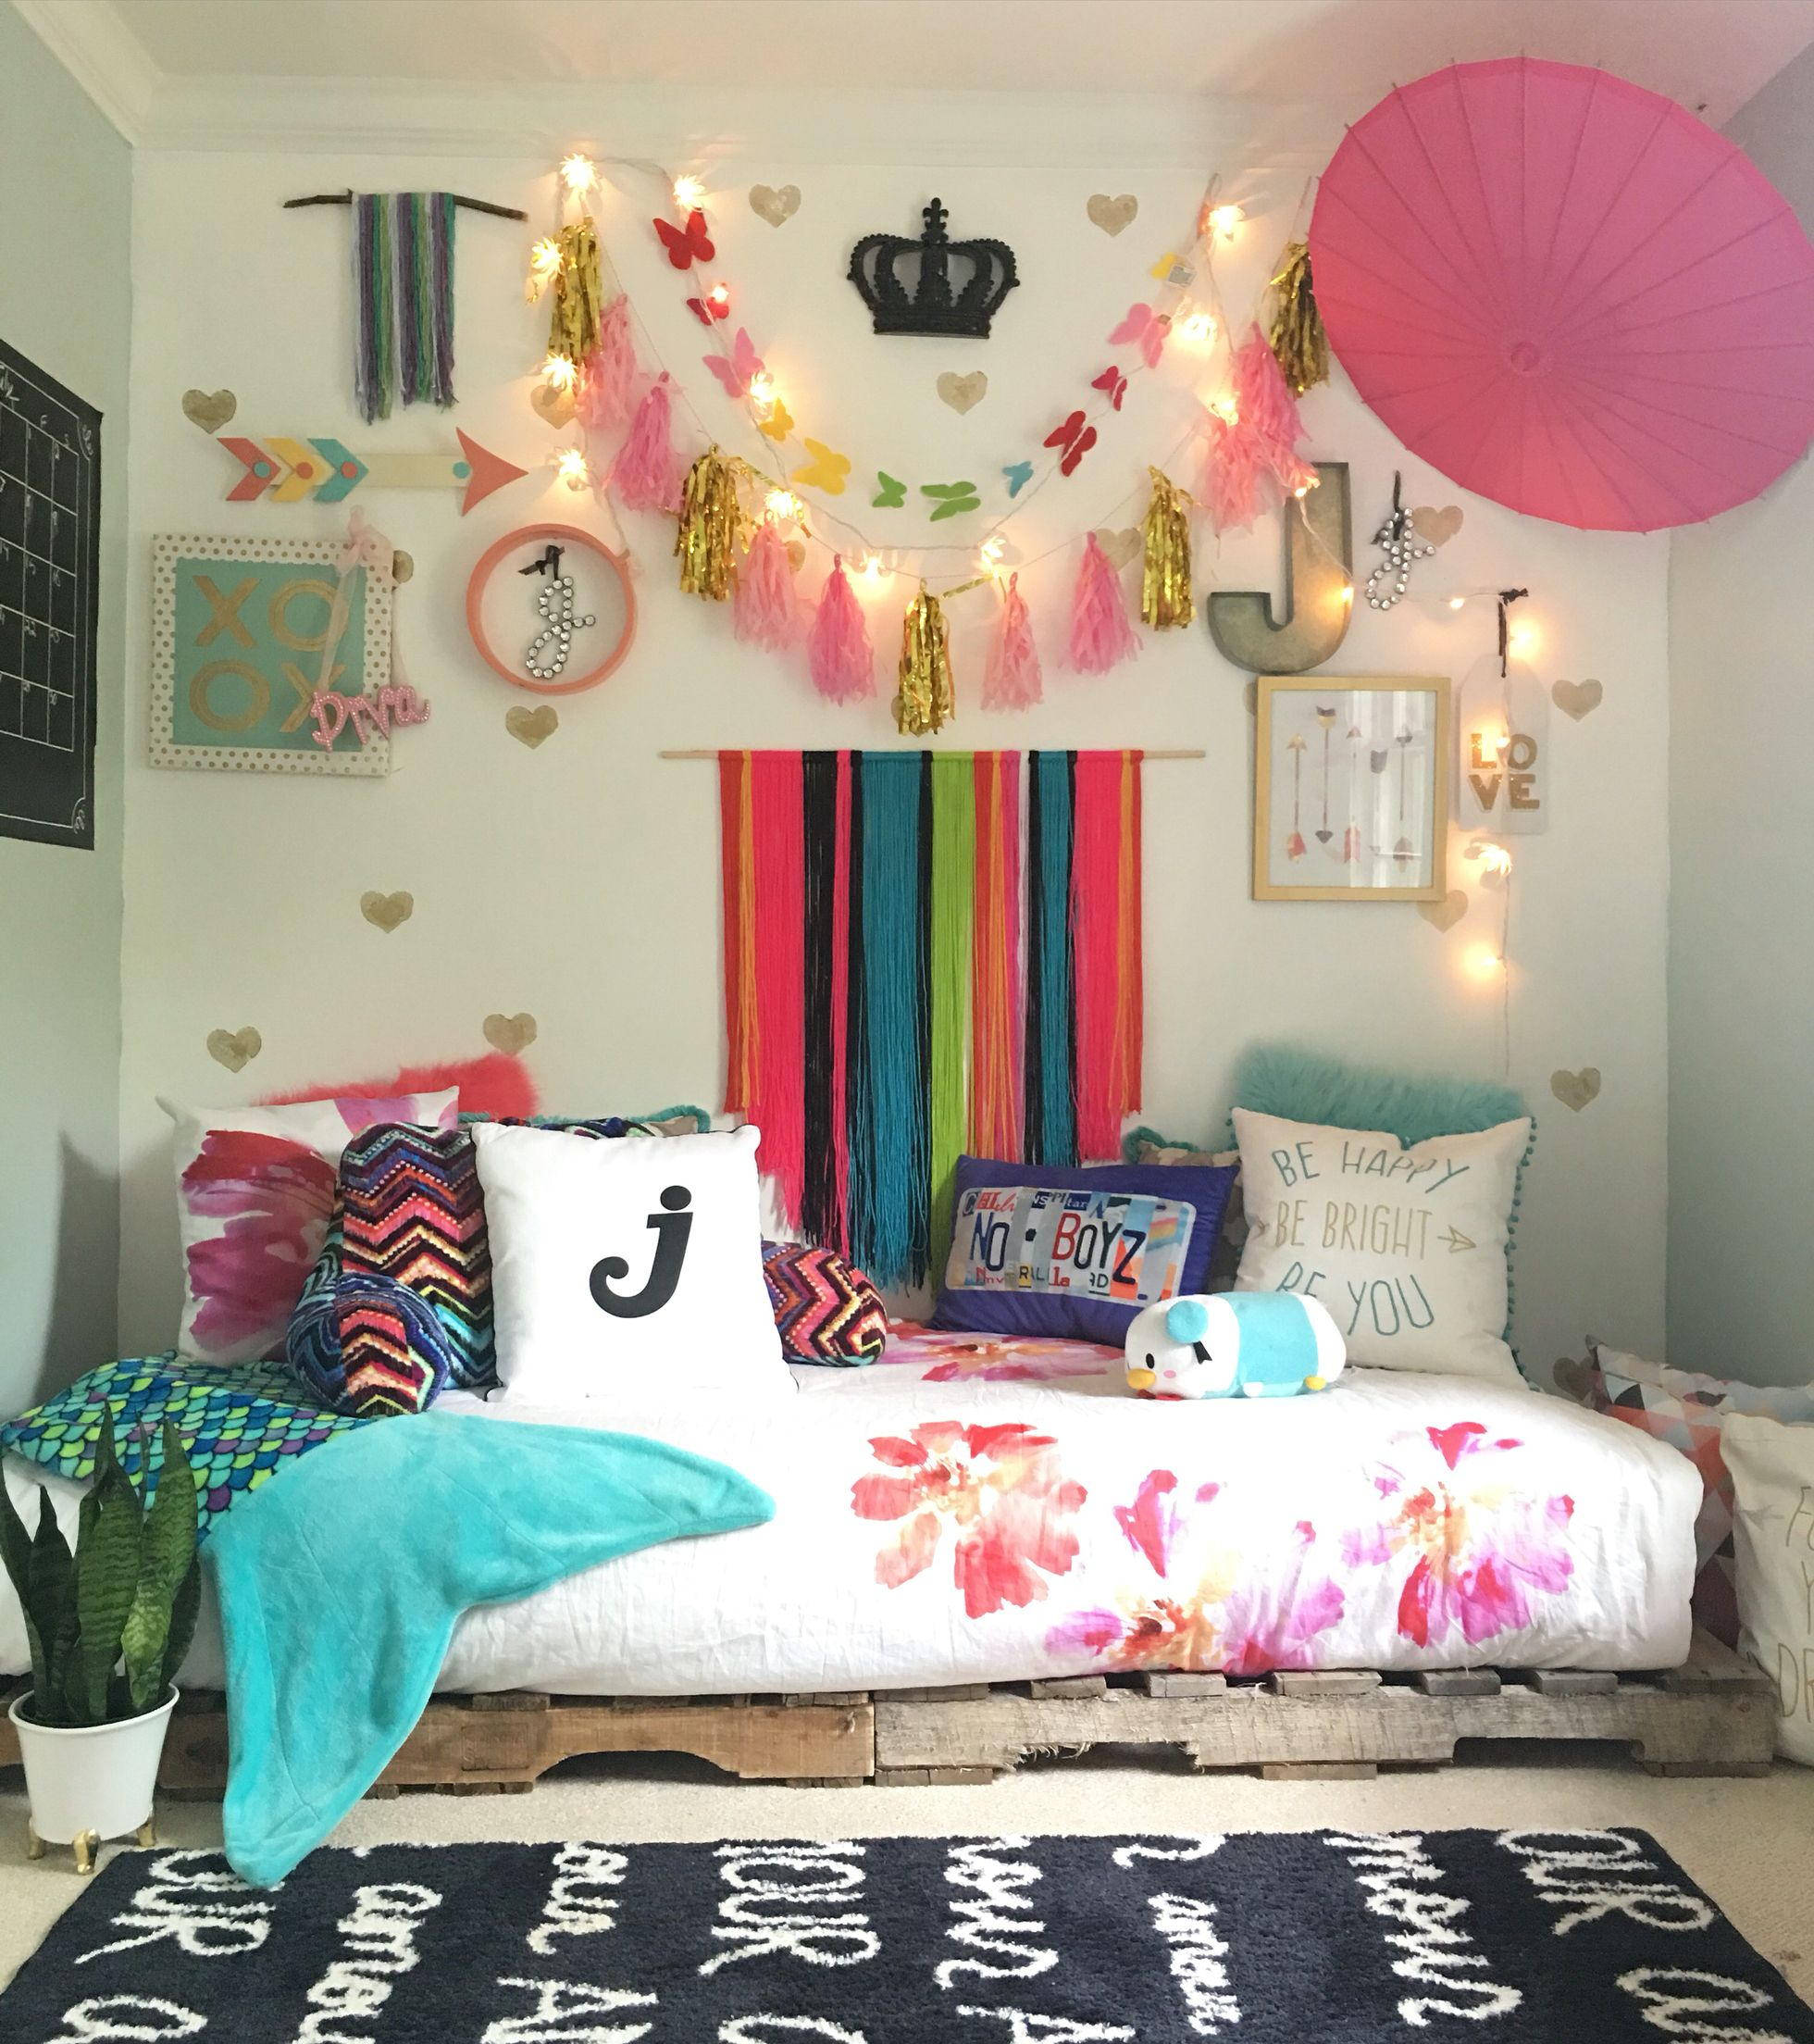 34 Girls Room Decor Ideas to Change The Feel of The Room | Tween ...